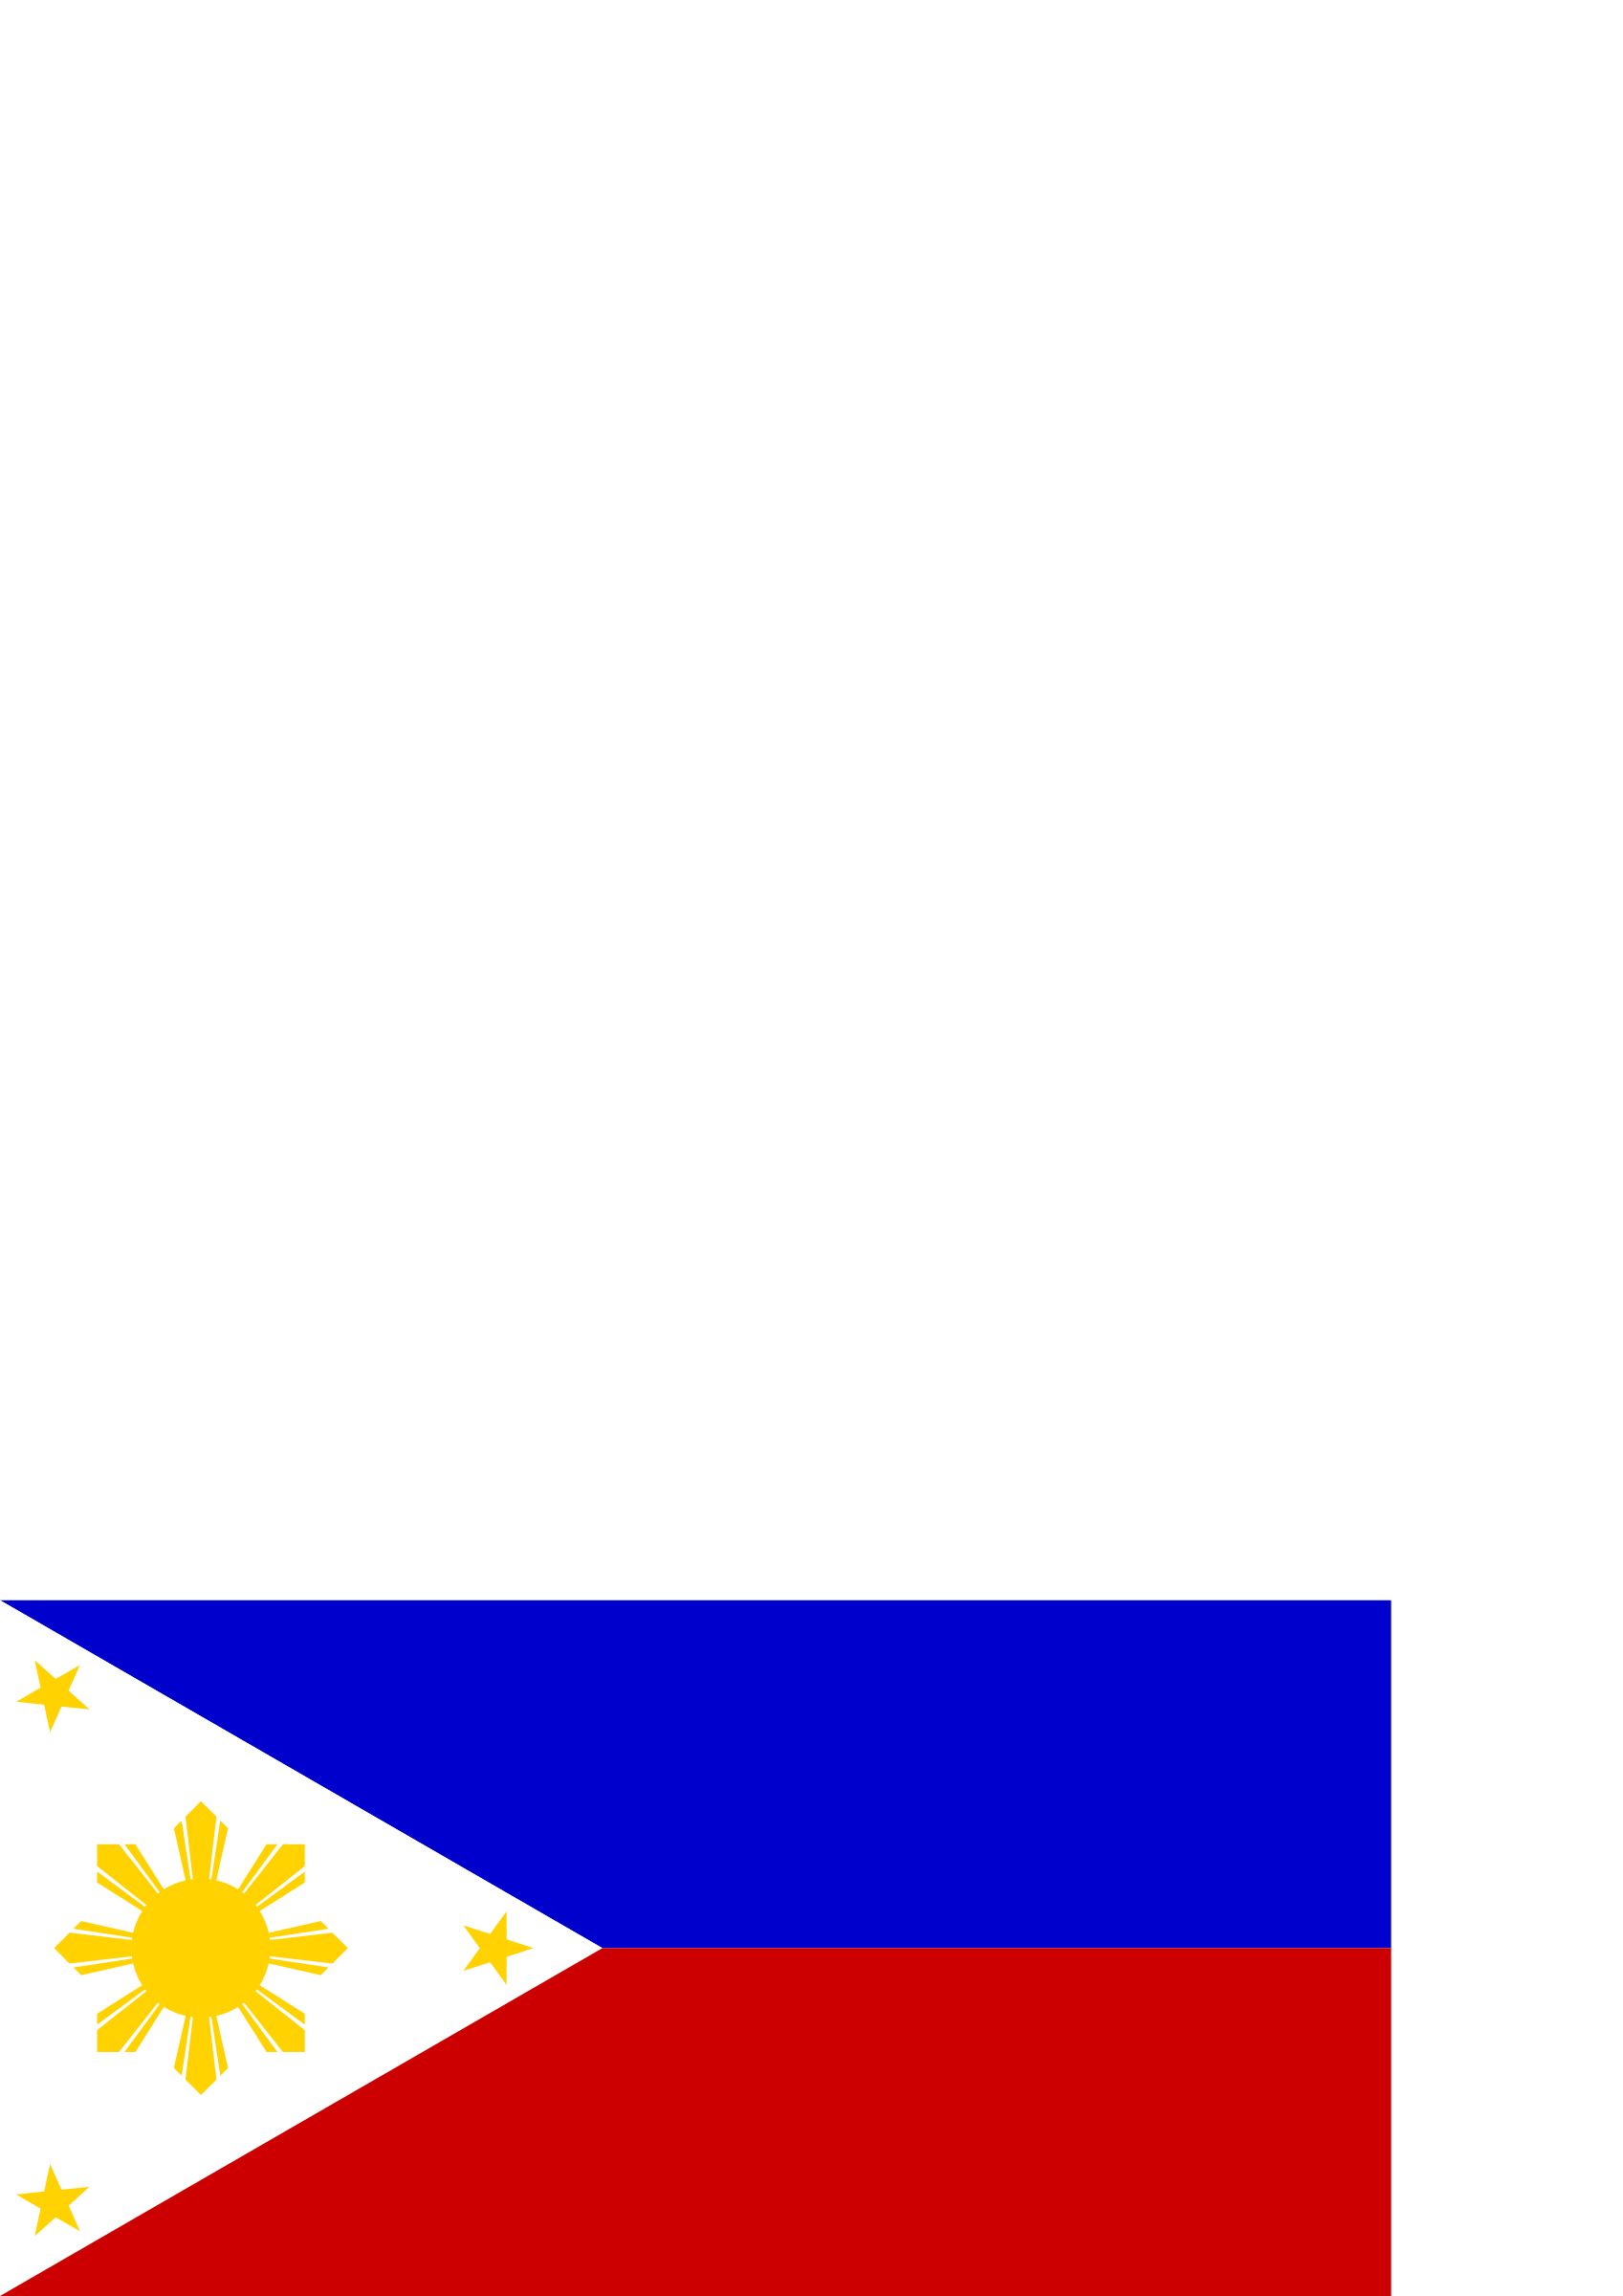 The Philippine Flag by #marco